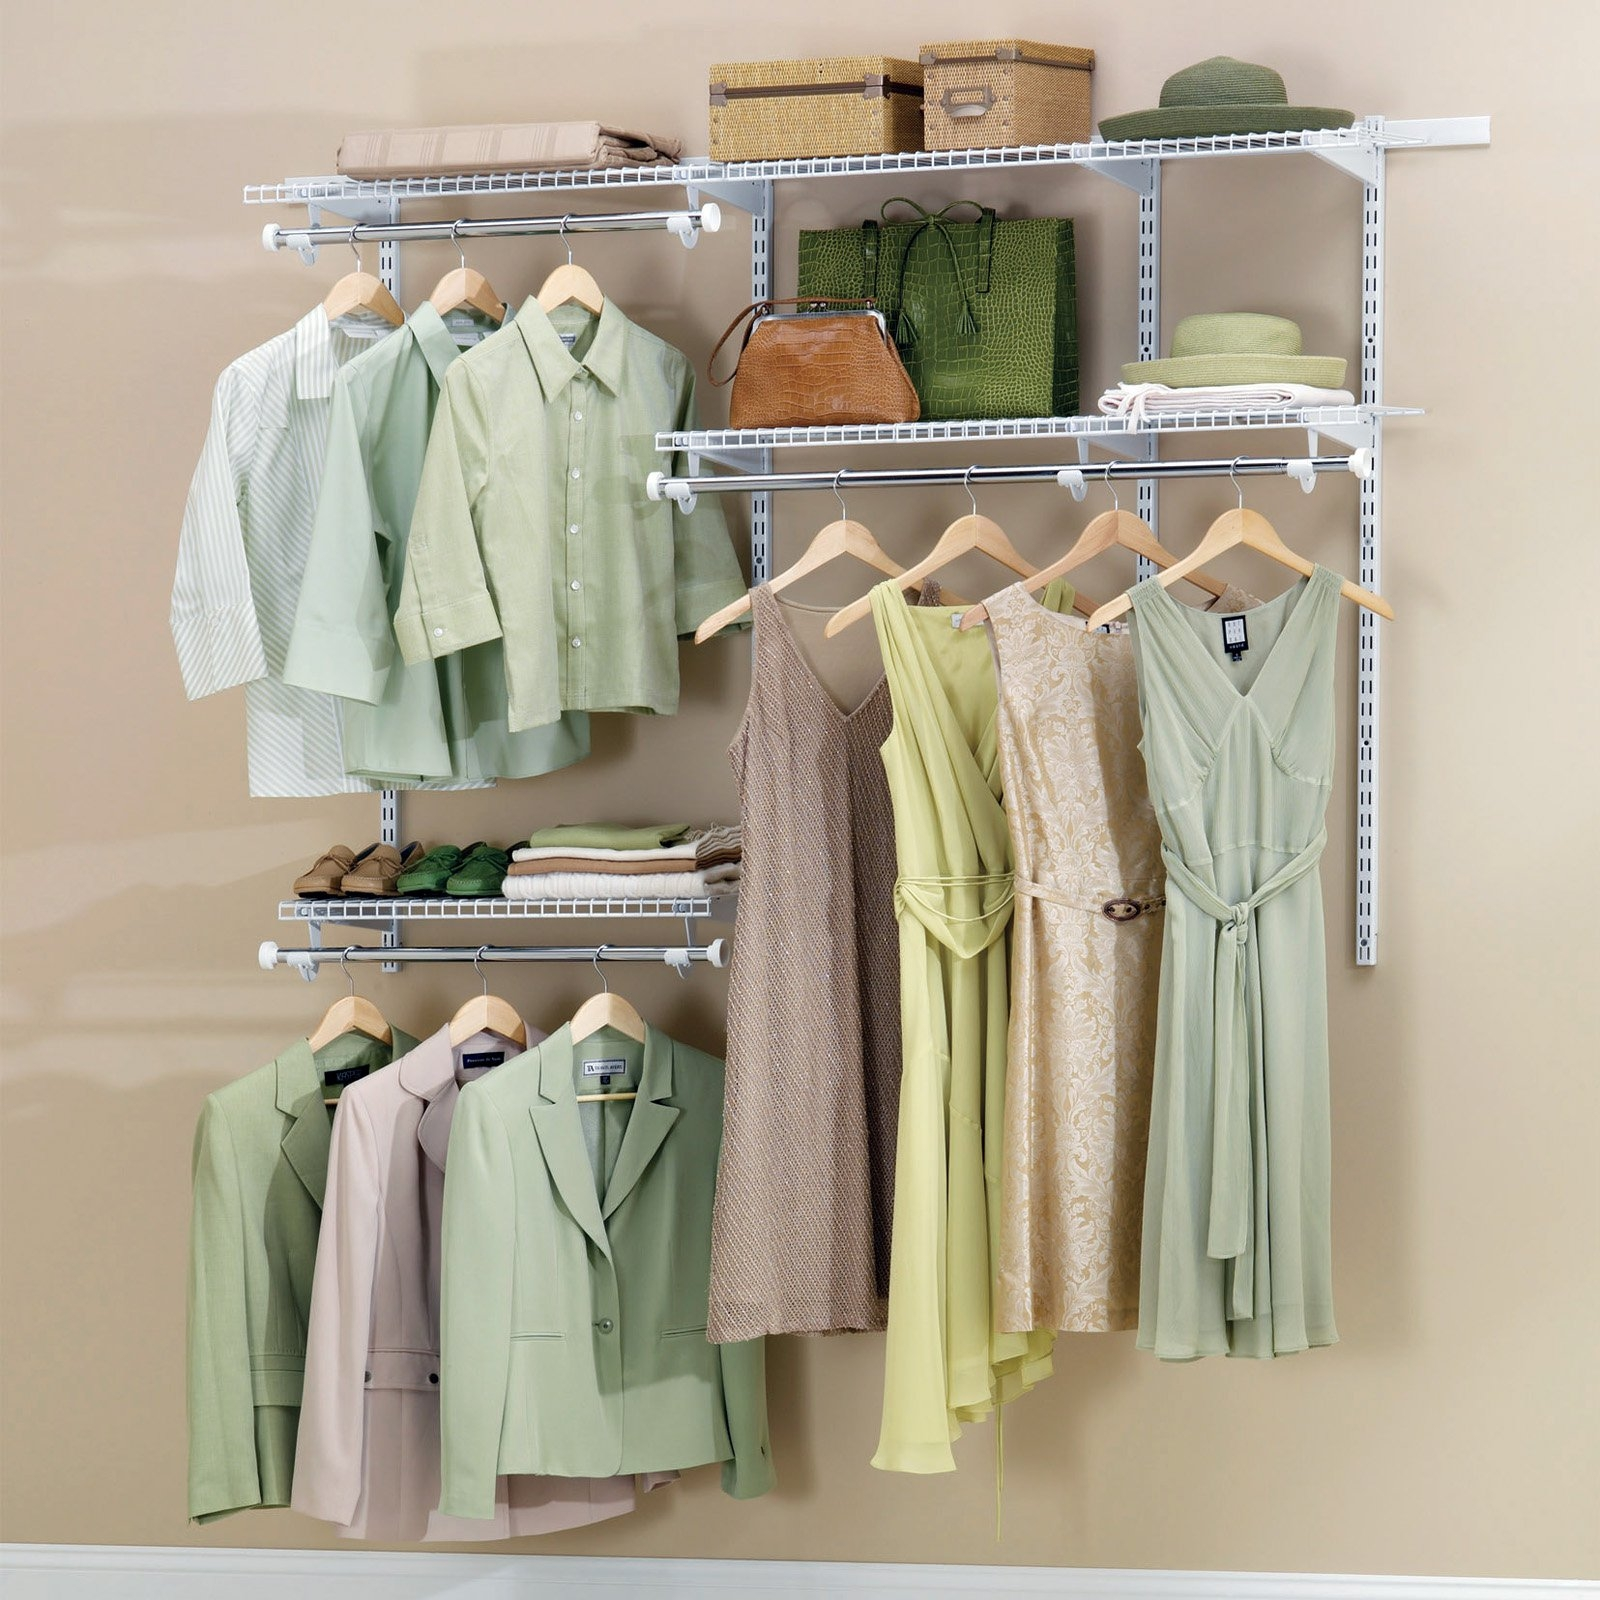 Closet Storage Organizers On Hayneedle Closet Storage Ideas For Wardrobe Hangers Storages (Image 14 of 25)